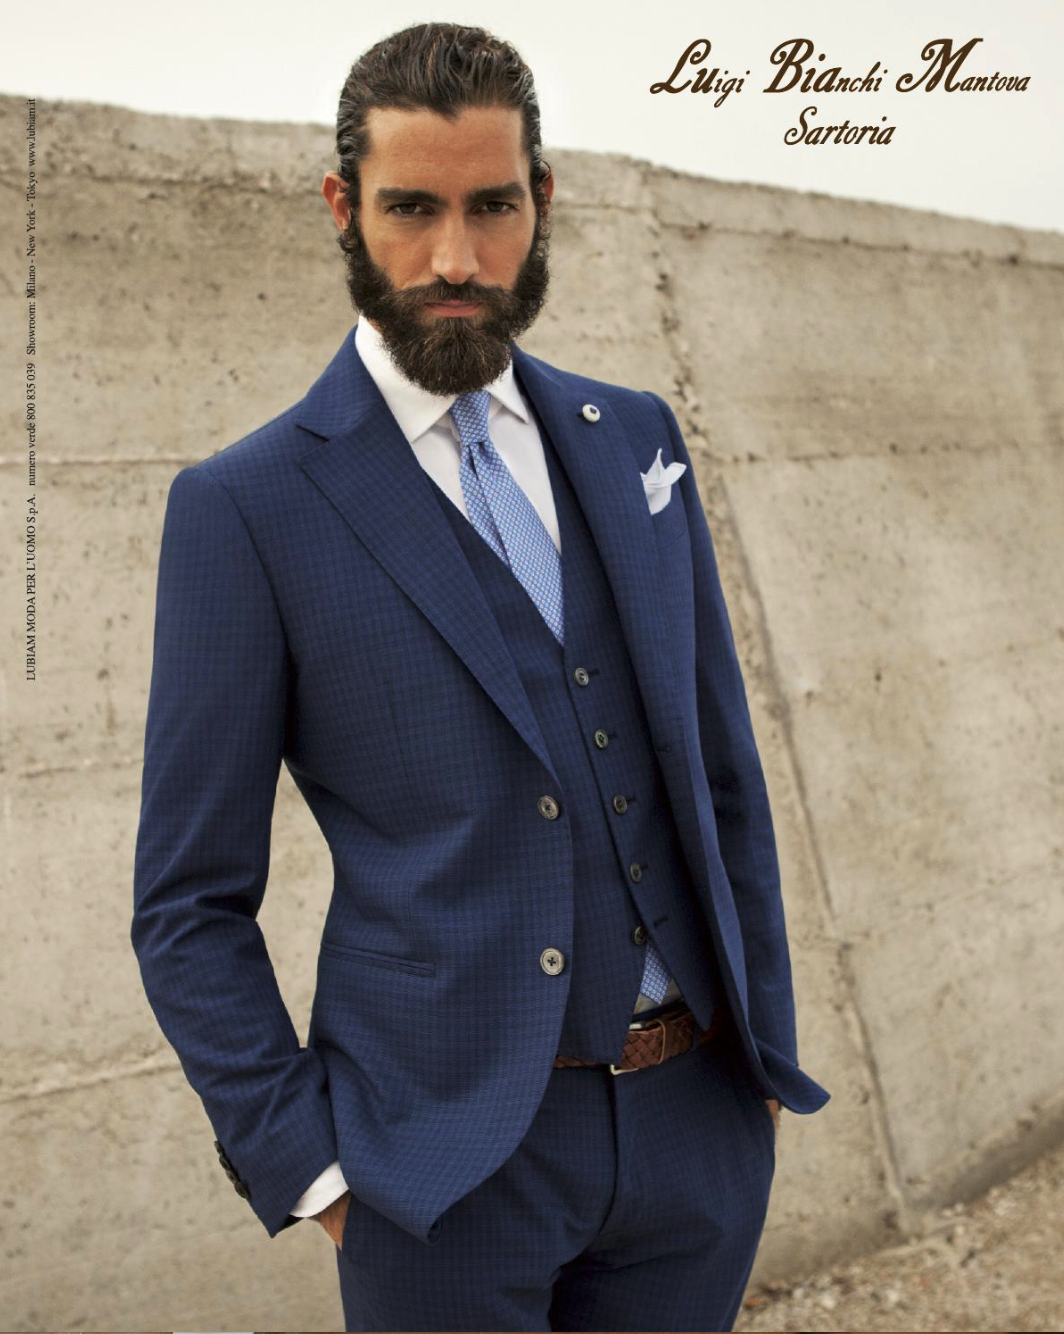 Luigi Bianchi Mantova FW13 | Dress Code - Work Approved Outfits ...